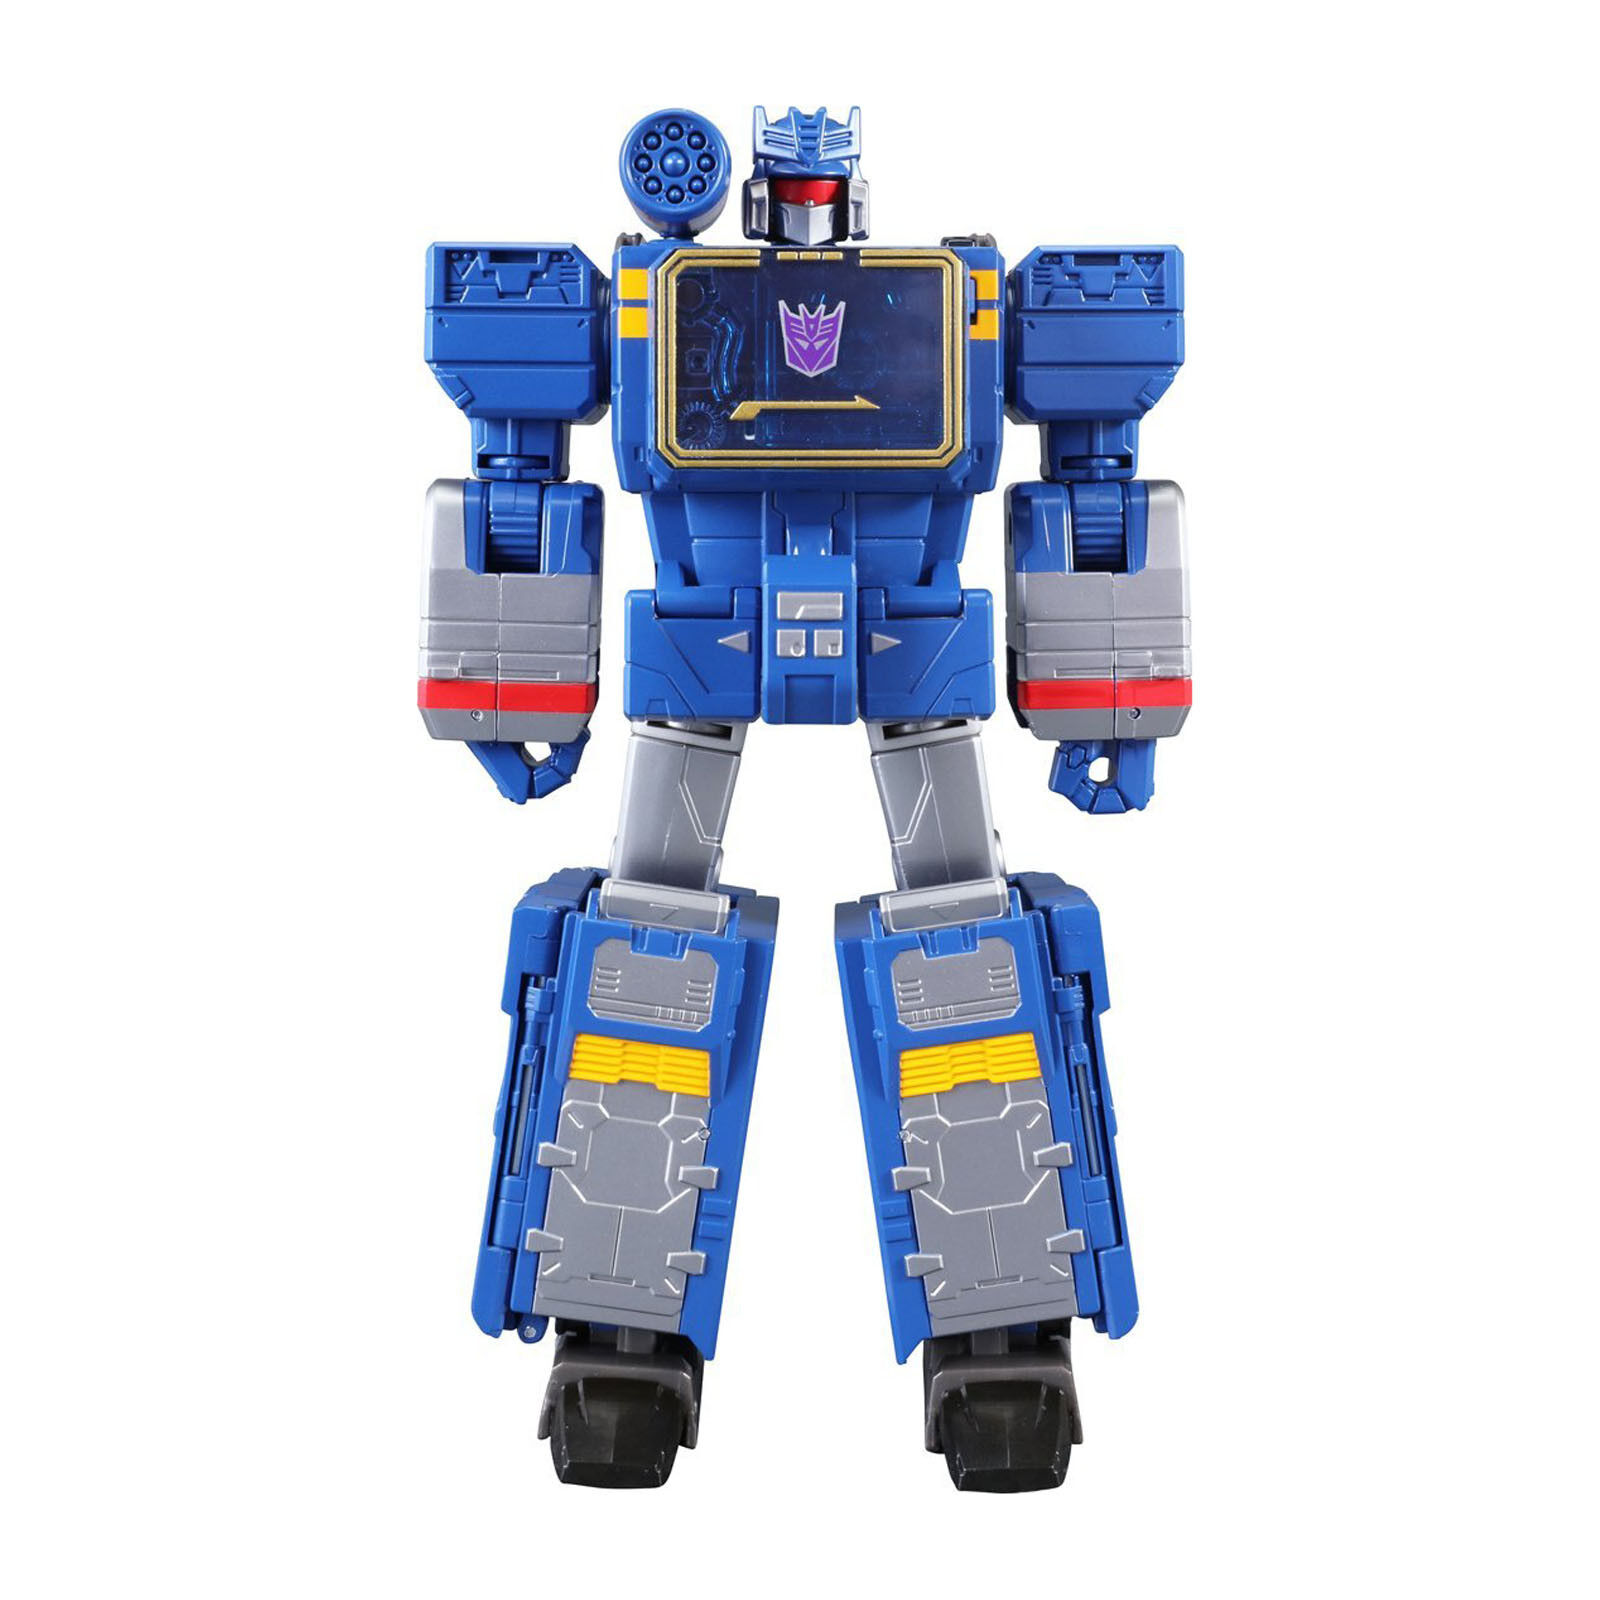 Transformers LG-36 Legends Series LG 36 SOUNDWAVE Gift Christmas Toy Toy Toy Robots Kids 7d5e19